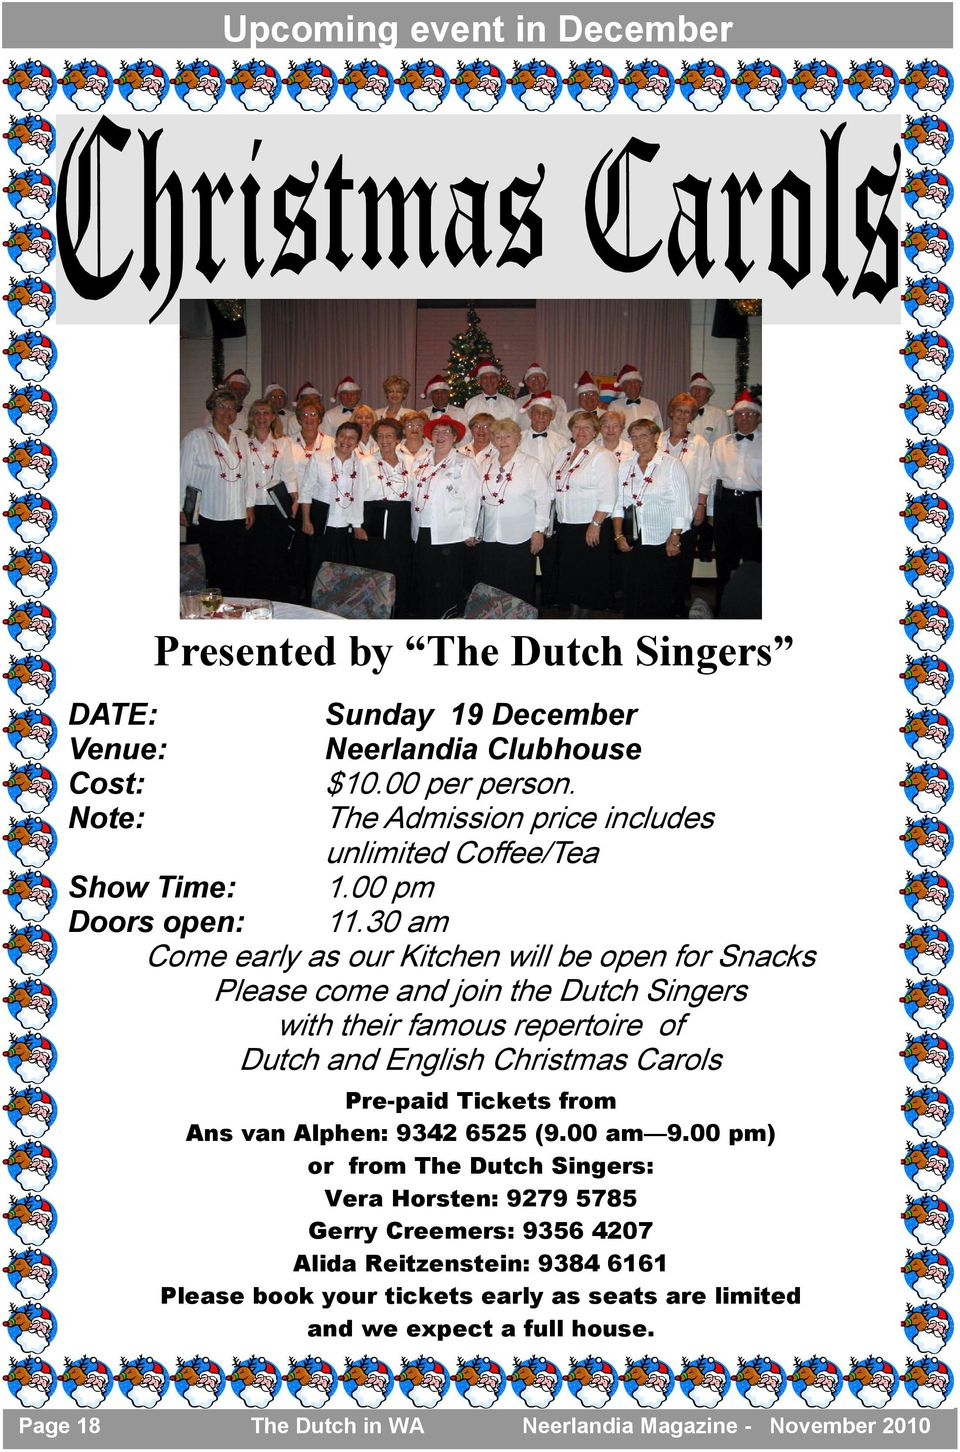 30 am Come early as our Kitchen will be open for Snacks Please come and join the Dutch Singers with their famous repertoire of Dutch and English Christmas Carols Show Time: